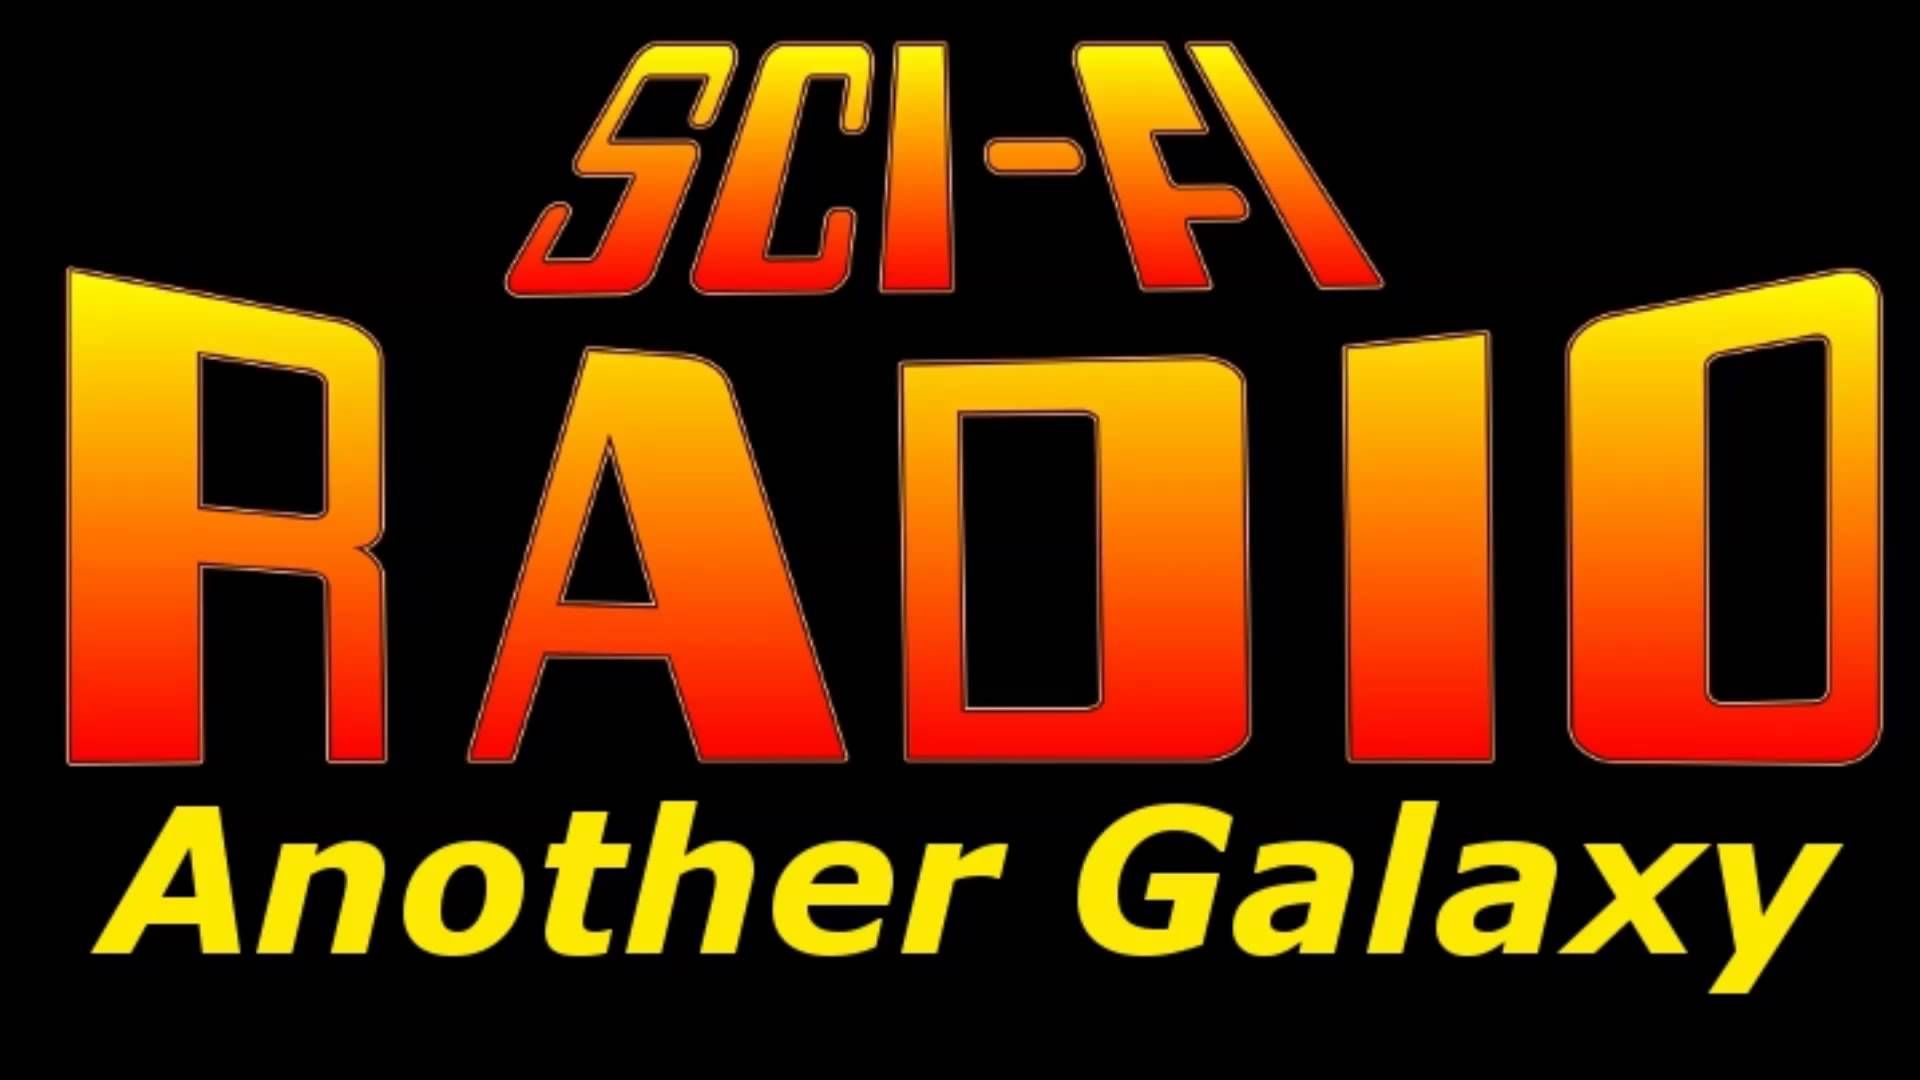 sci fi radio another galaxy best audio old time radio horror